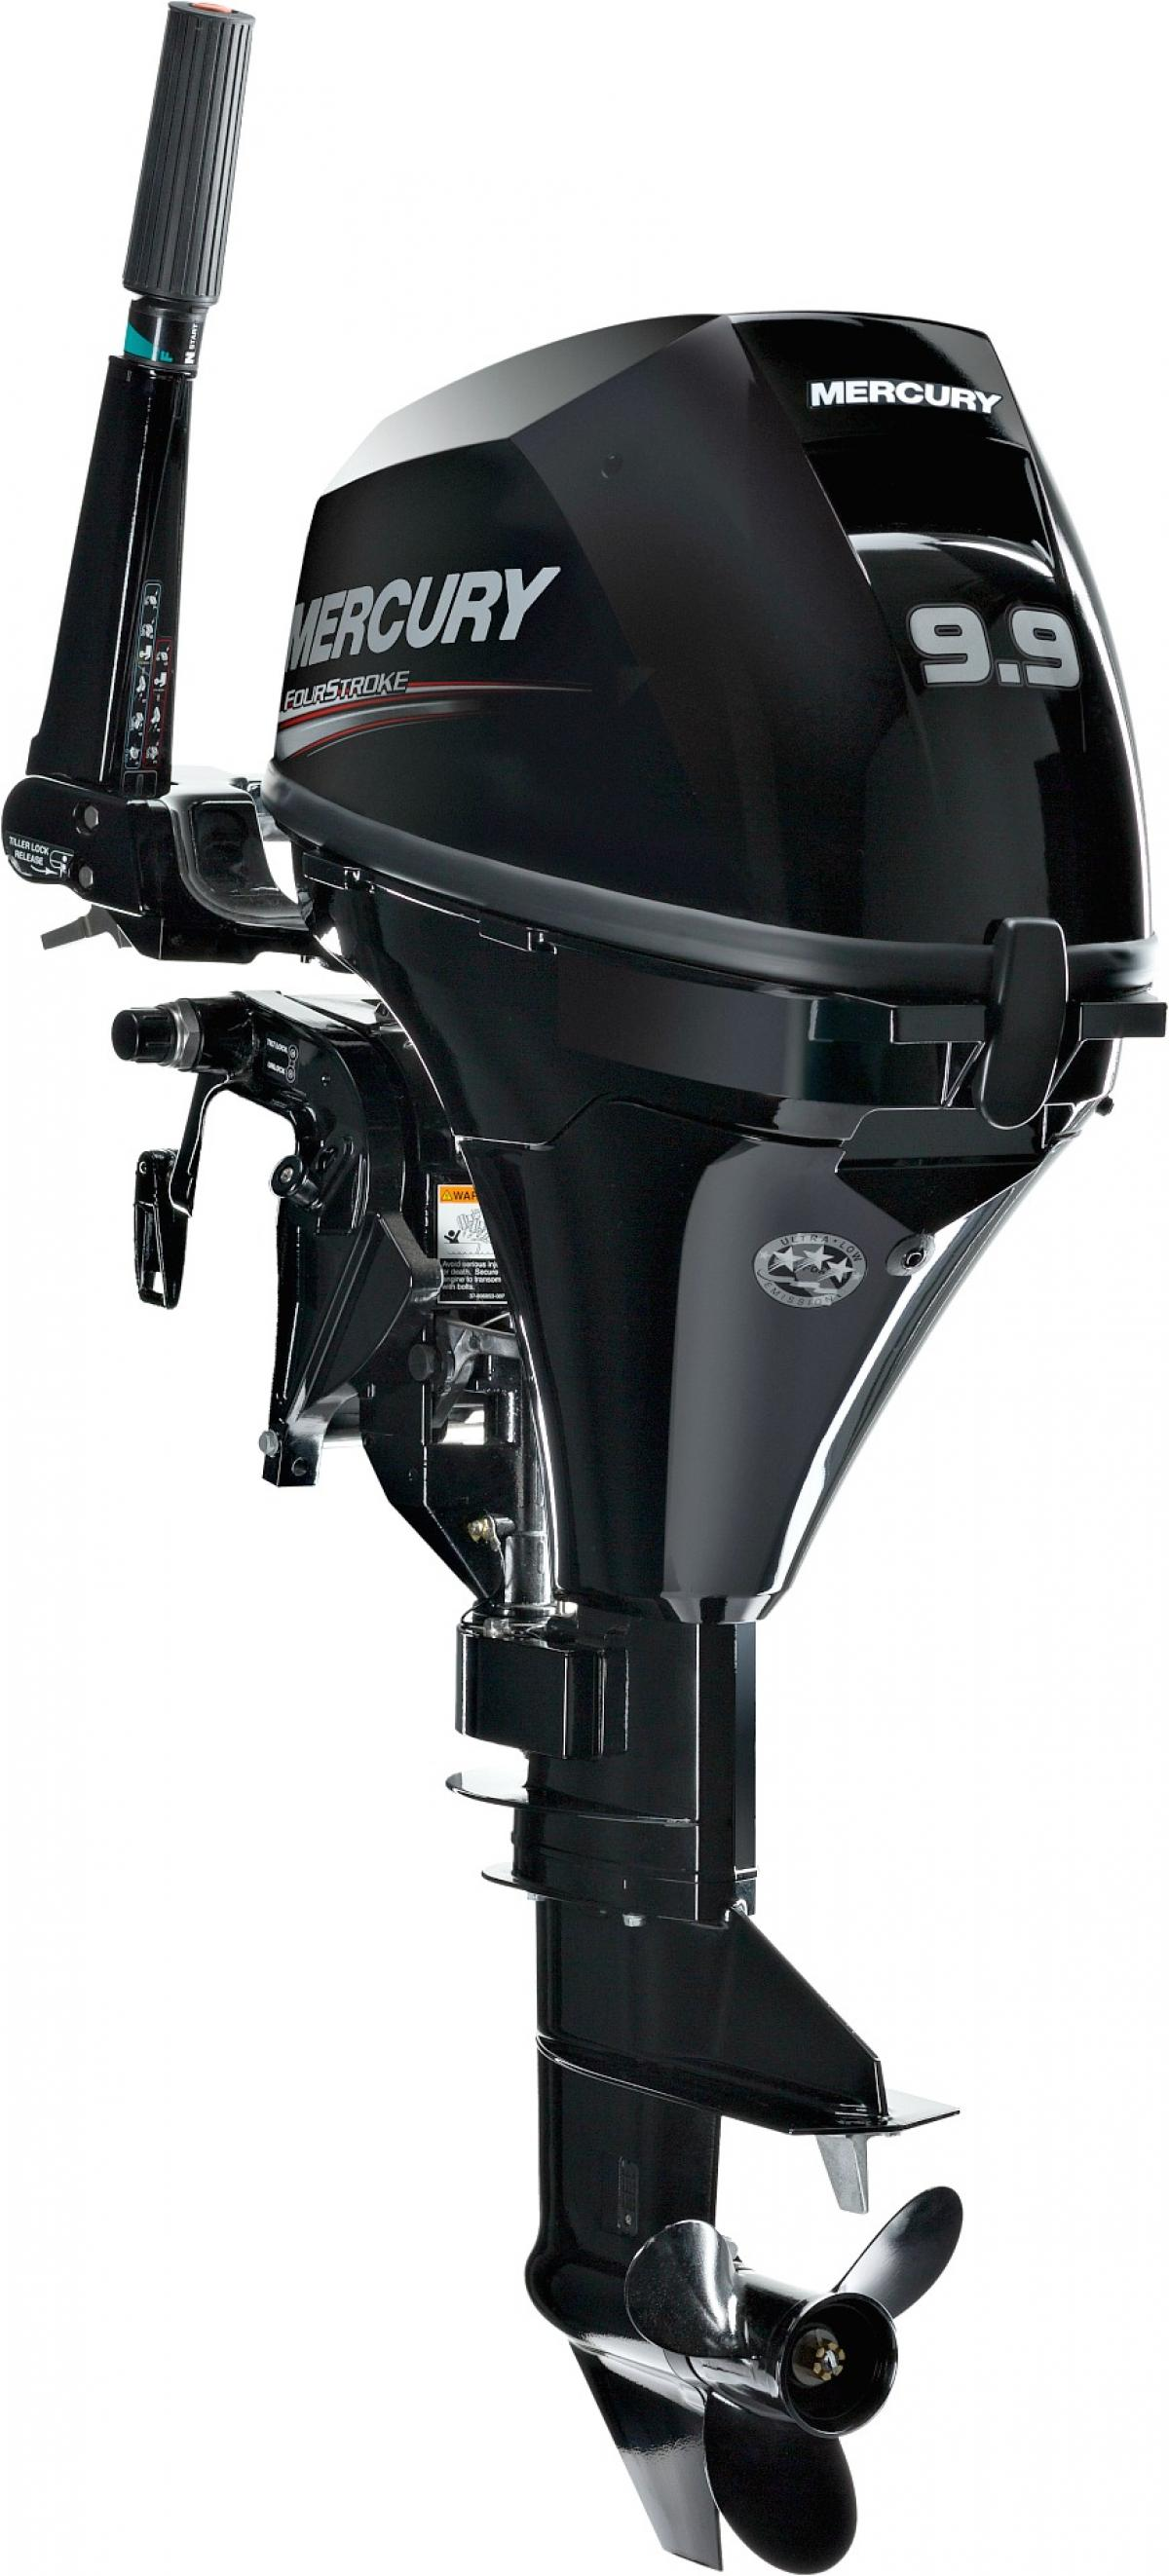 Mercury Outboards for Sale - Port Macquarie Hastings Marine